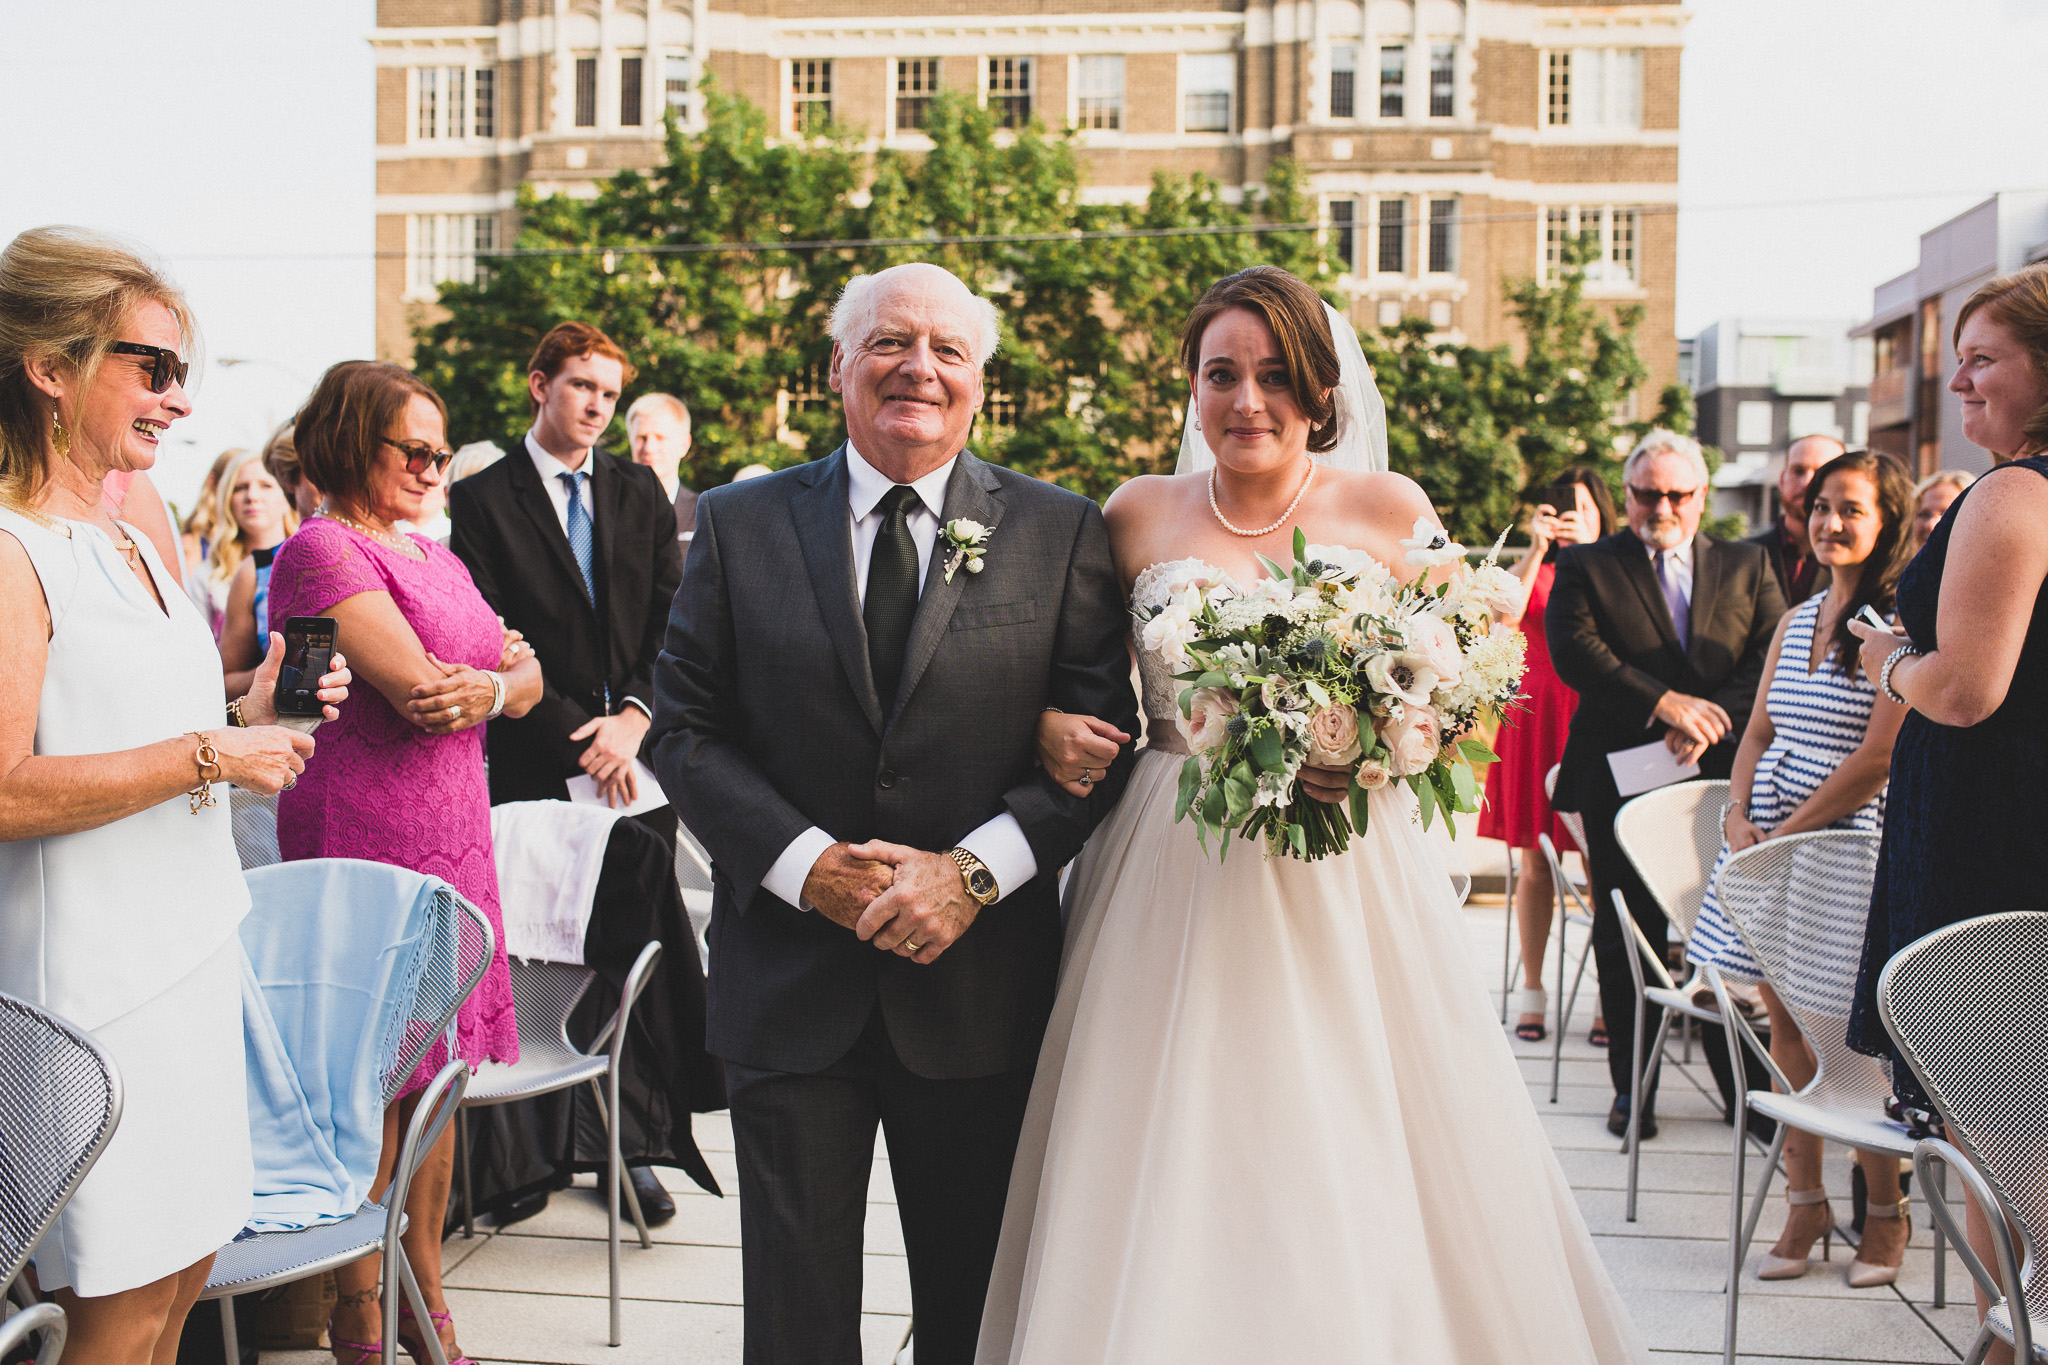 Emotional and romantic wedding photography